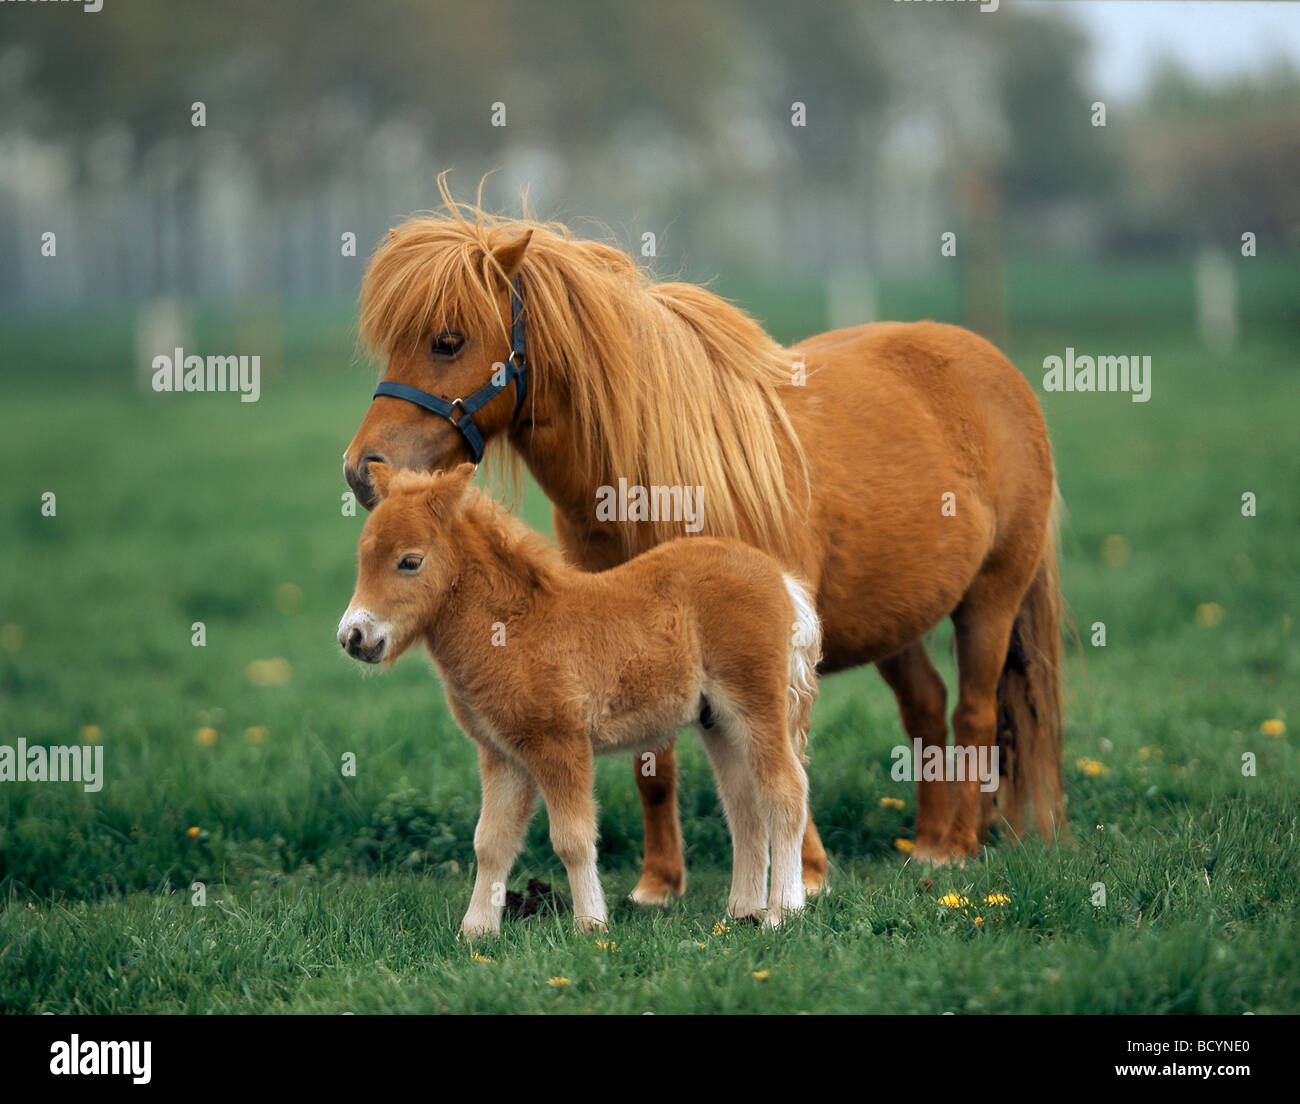 miniature shetland pony chestnut mare with foal on a meadow stock photo royalty free image. Black Bedroom Furniture Sets. Home Design Ideas